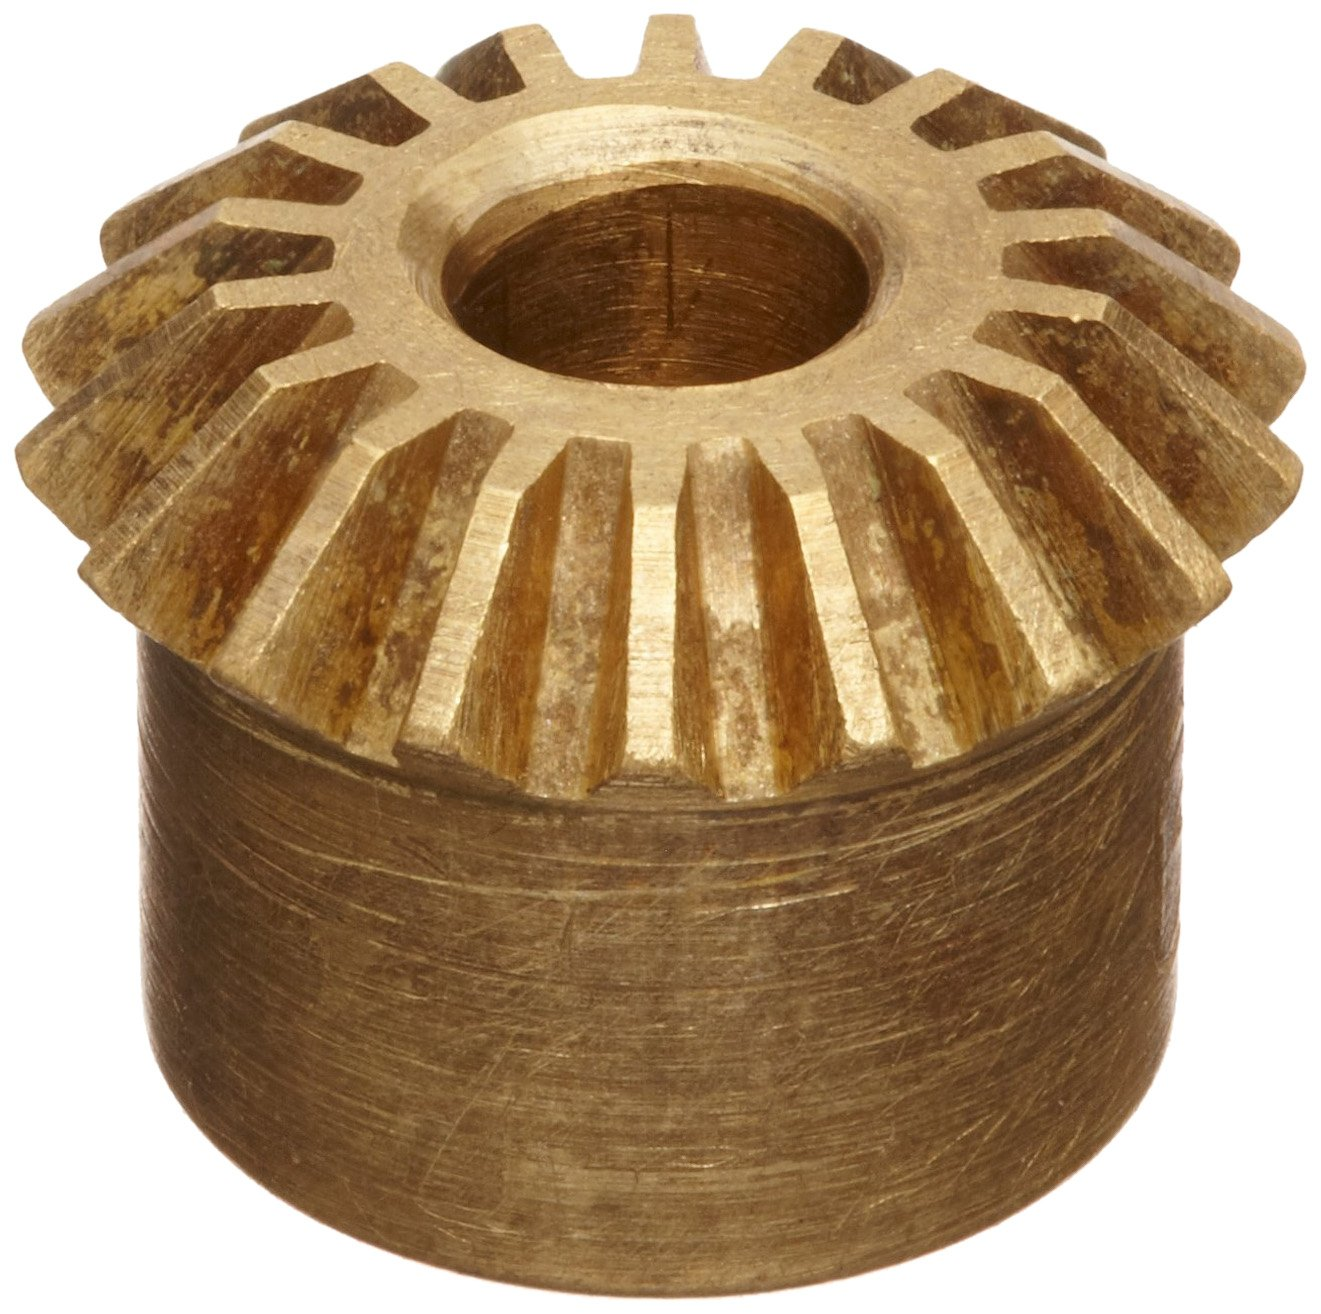 Boston Gear G463Y Miter Gear, 1:1 Ratio, 20 Degree Pressure Angle, 0.188'' Bore, 32 Pitch, 24 Teeth, Brass